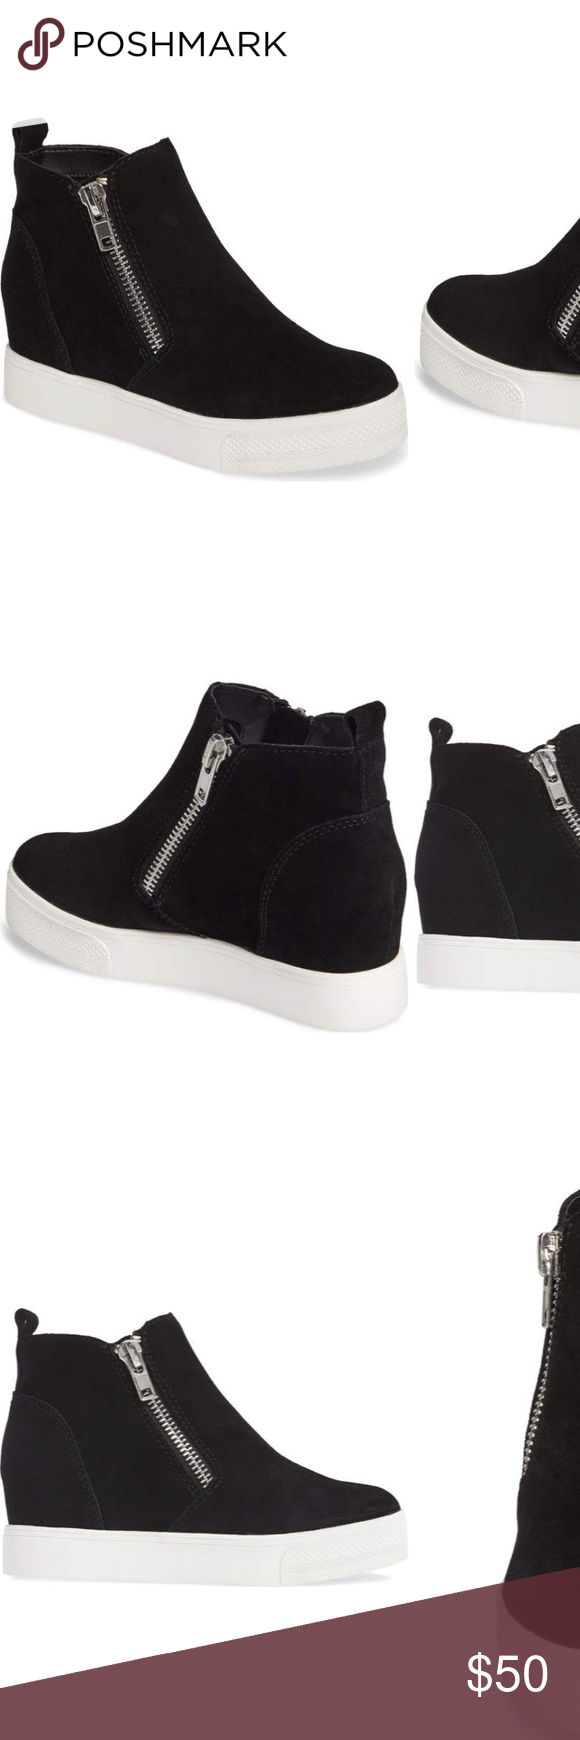 af72da84f85 Steve Madden Wedgie High Top Platform Sneaker Dual angled zips add gleaming  texture to a minimalist